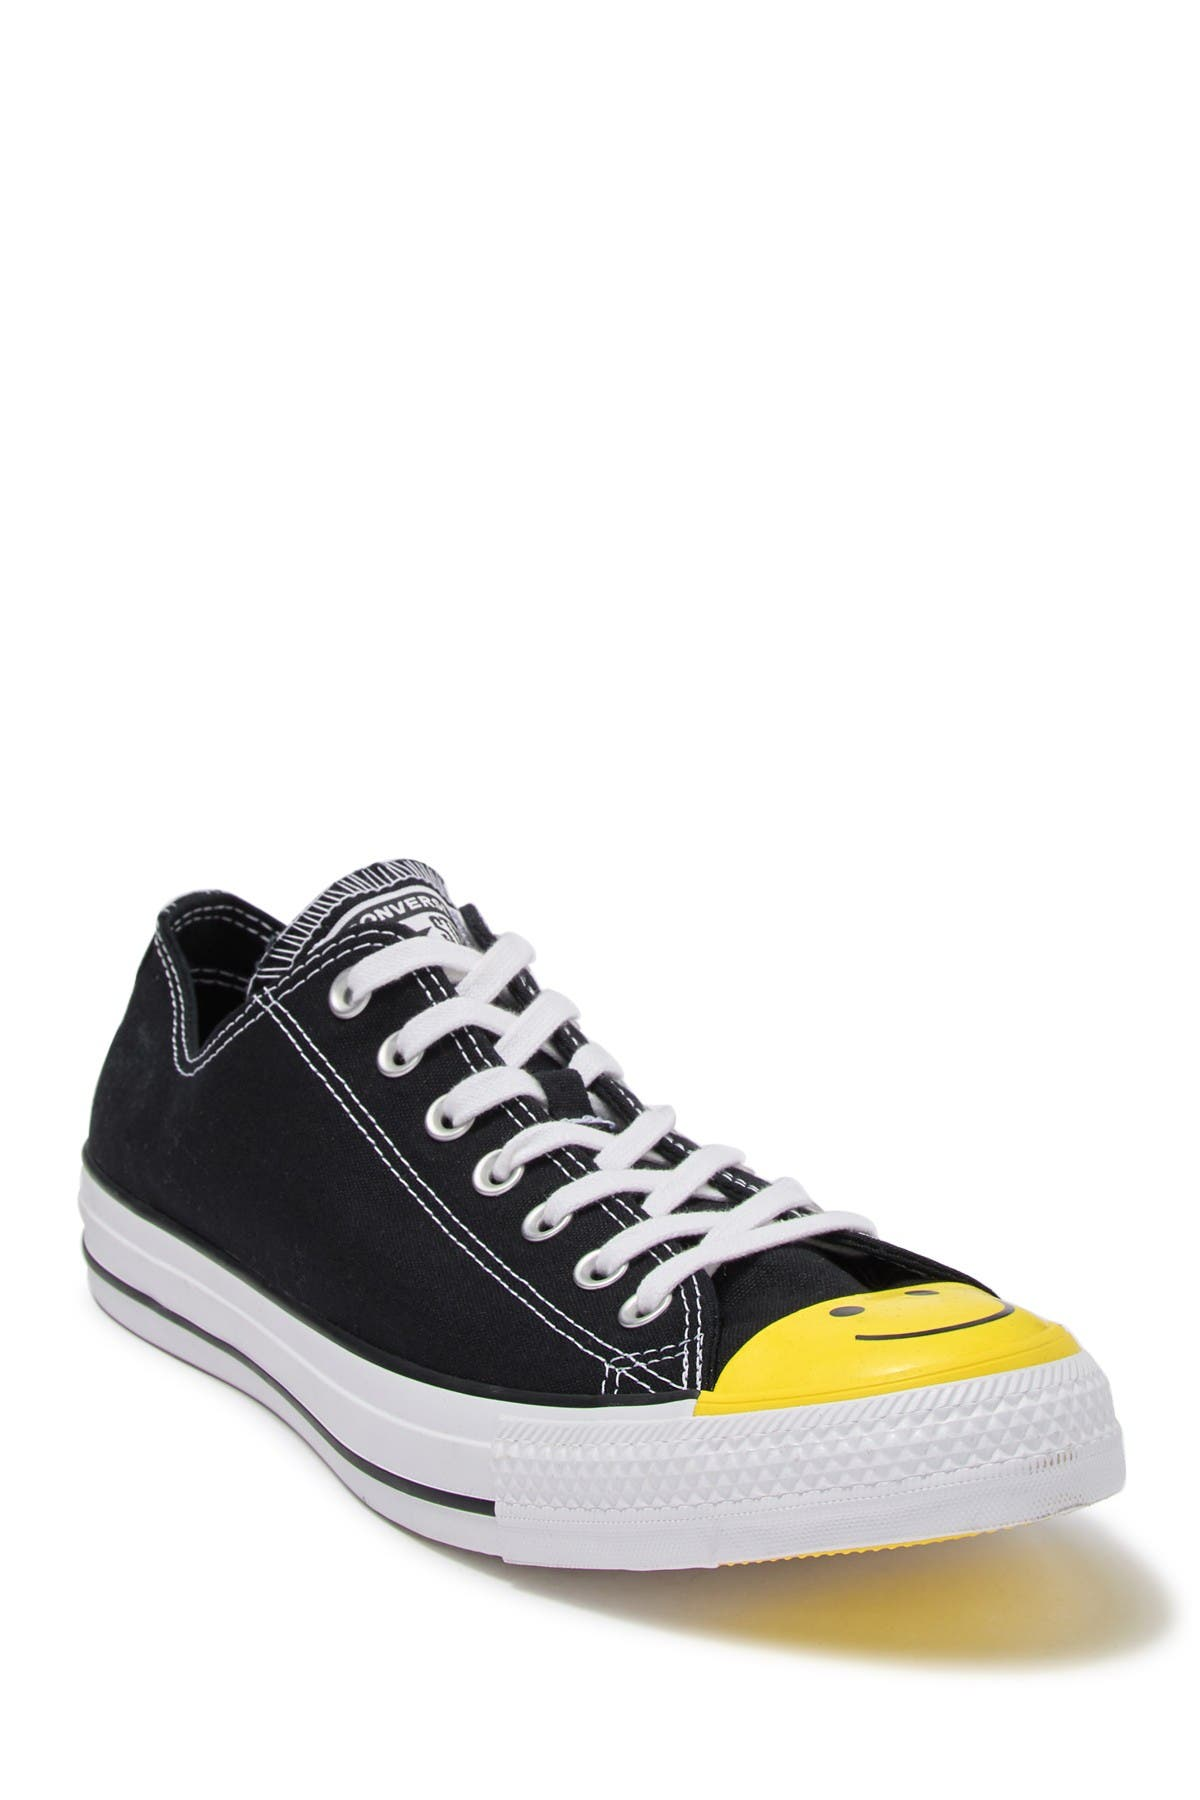 Chuck Taylor All Star Ox Yellow Smiley